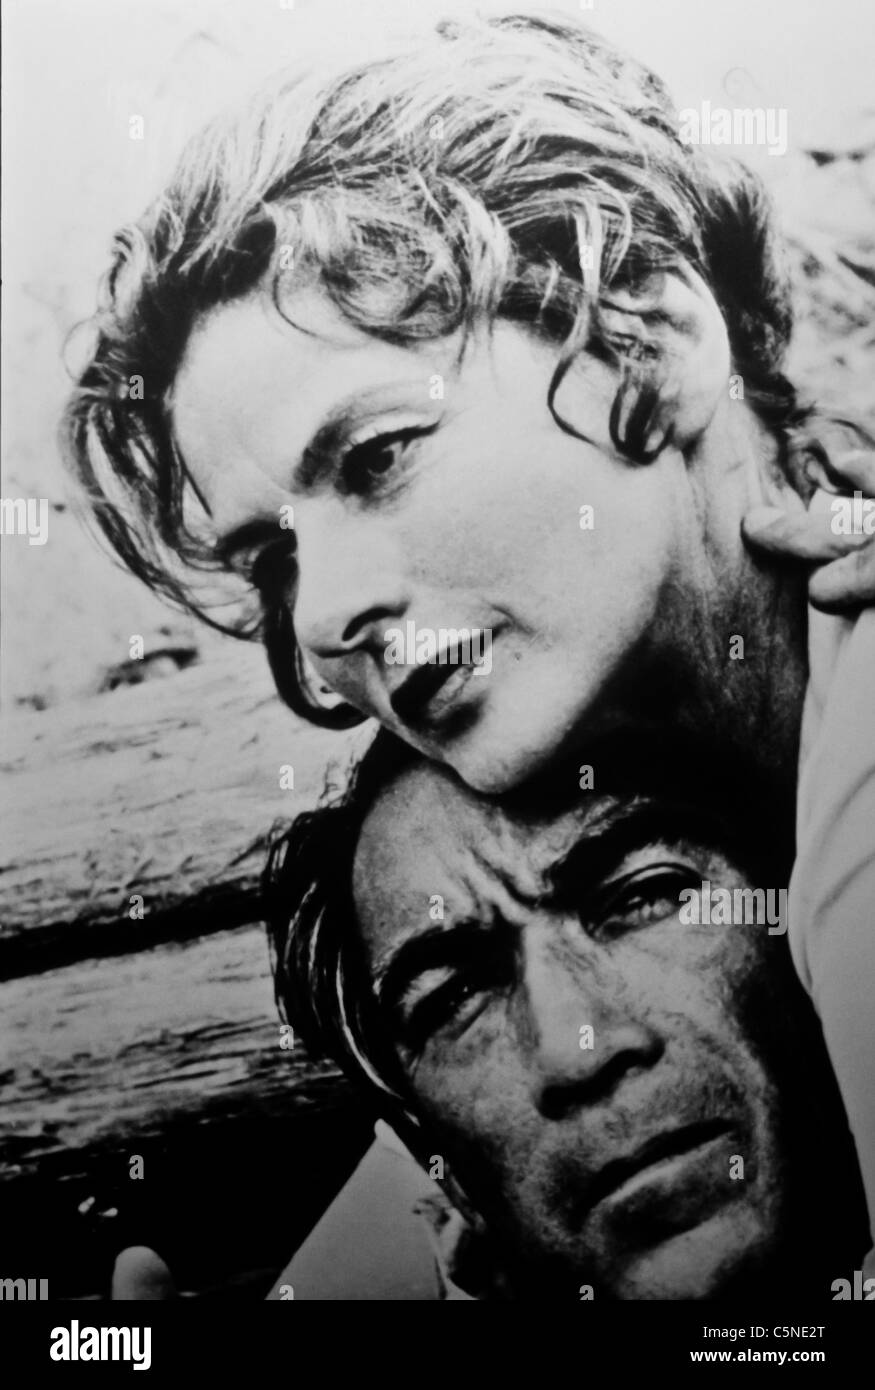 ingrid bergman and anthony quinn - Stock Image